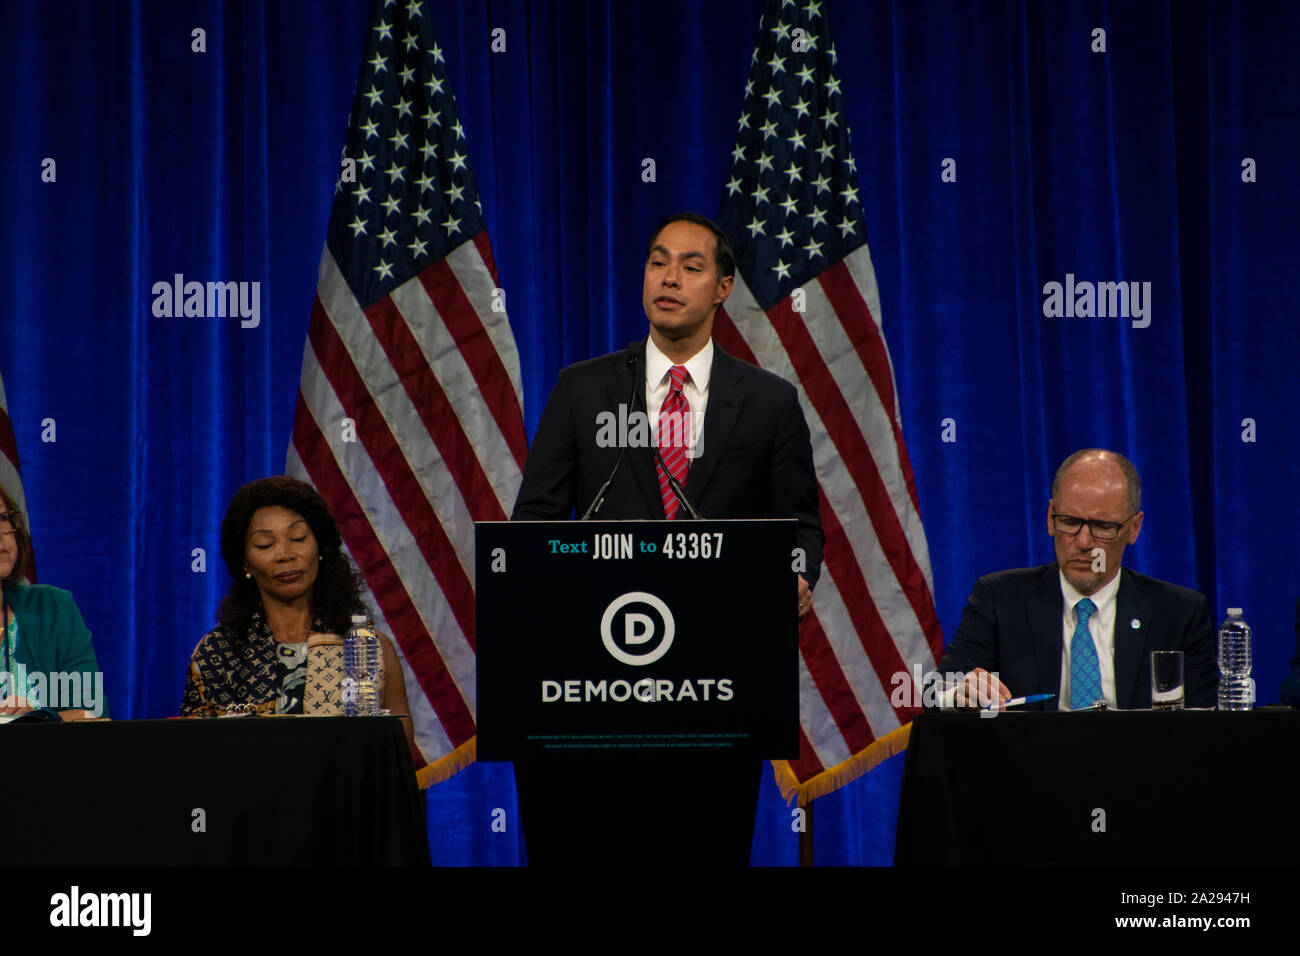 Former U.S. Secretary of Housing and Urban Development Julian Castro speaks at the DNC summer meetings in San Francisco on Aug. 23, 2019. Stock Photo